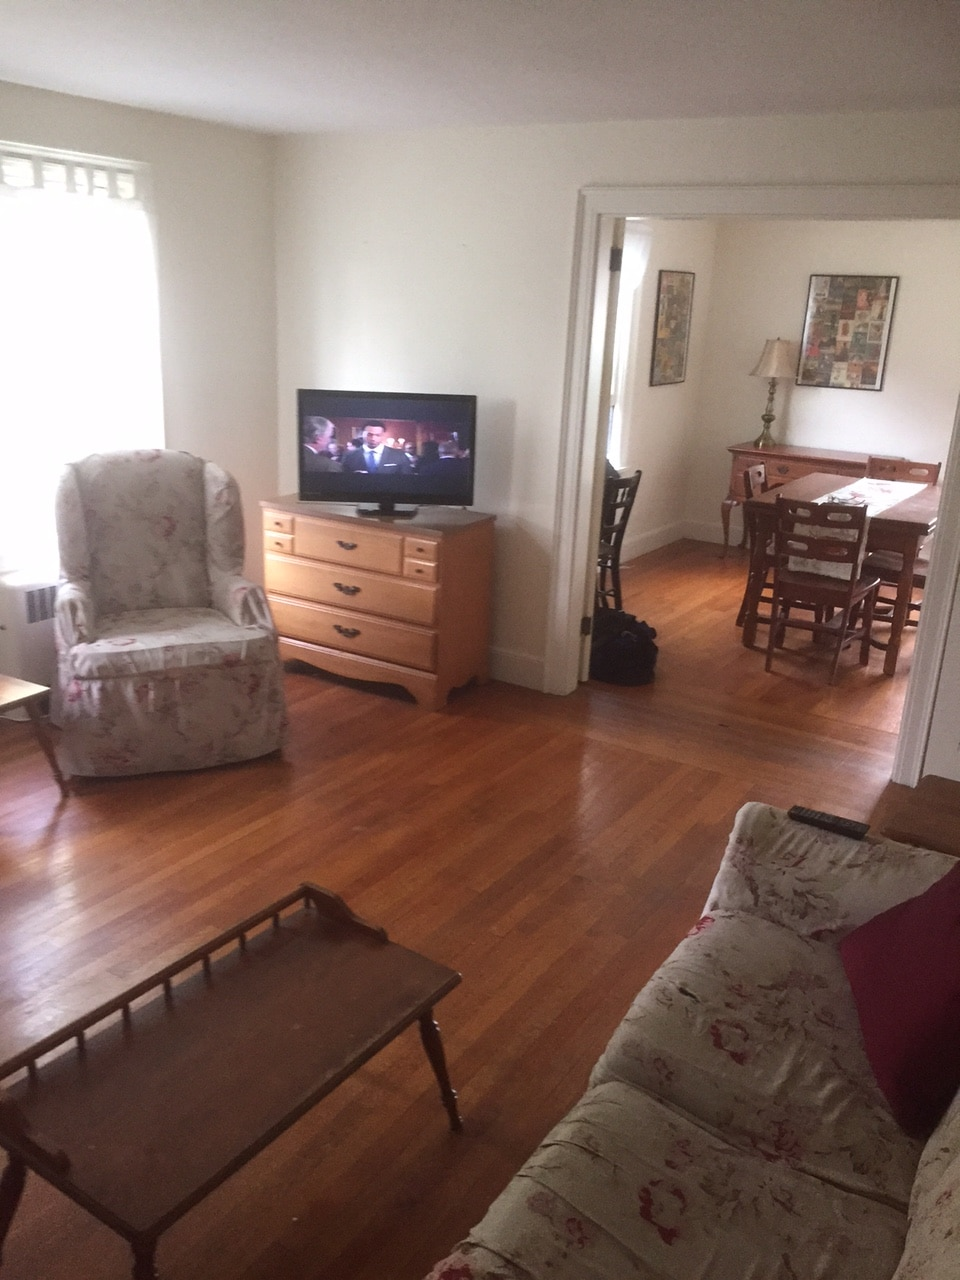 GREAT location - apt near Bellevue